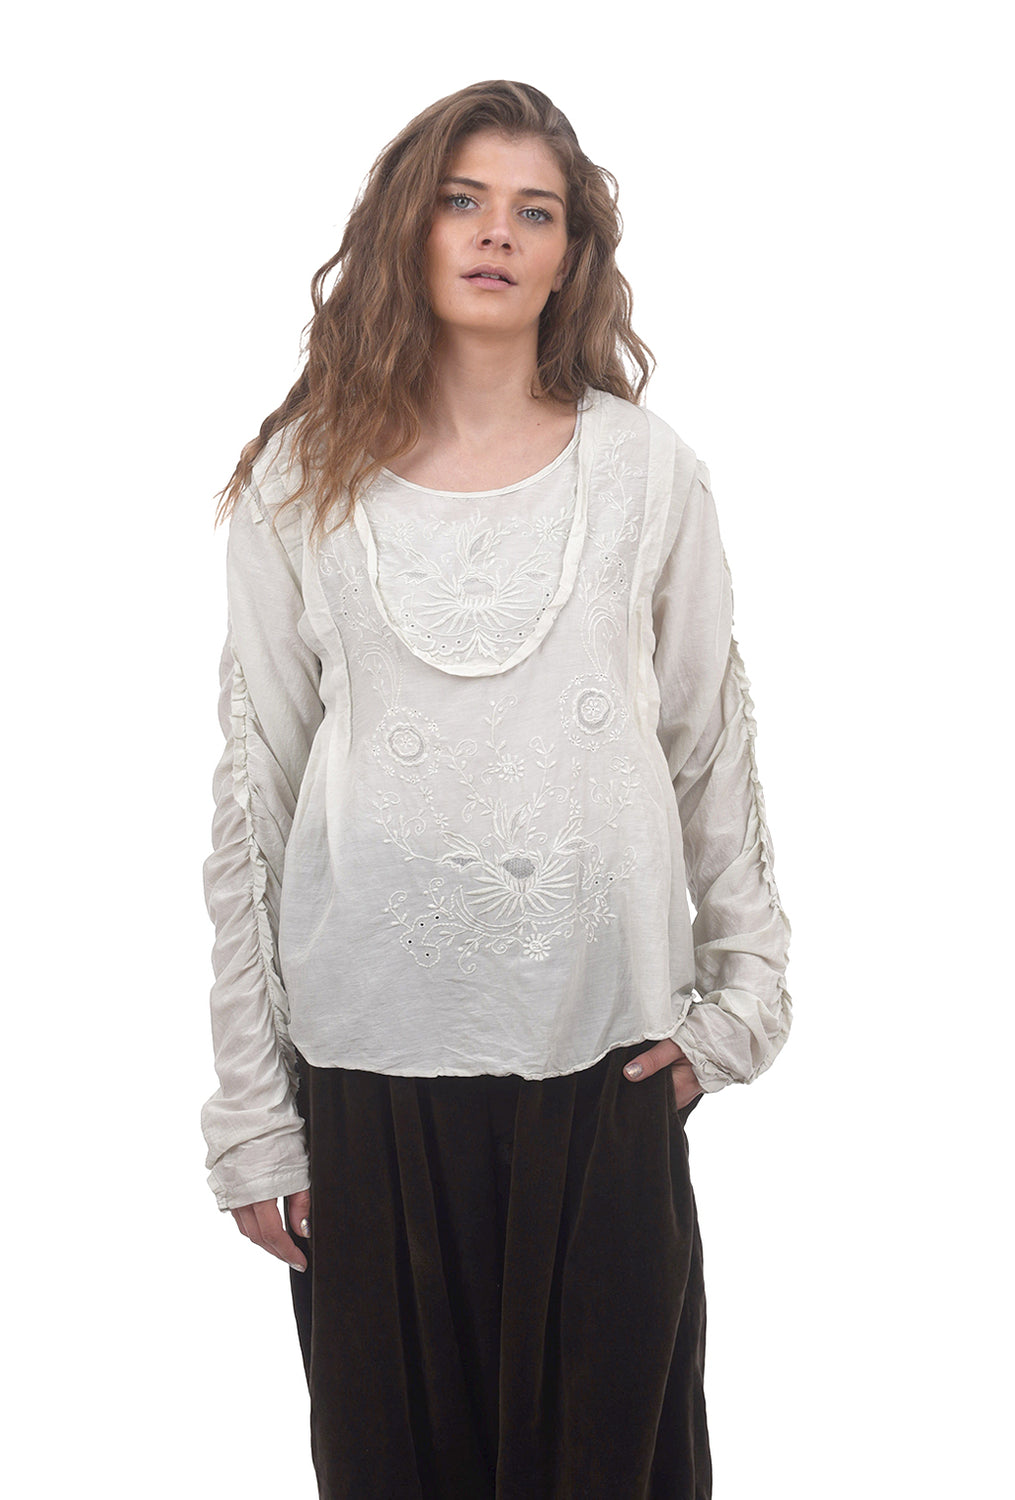 Magnolia Pearl Into the Groove Blouse, Moonlight One Size Moonlight